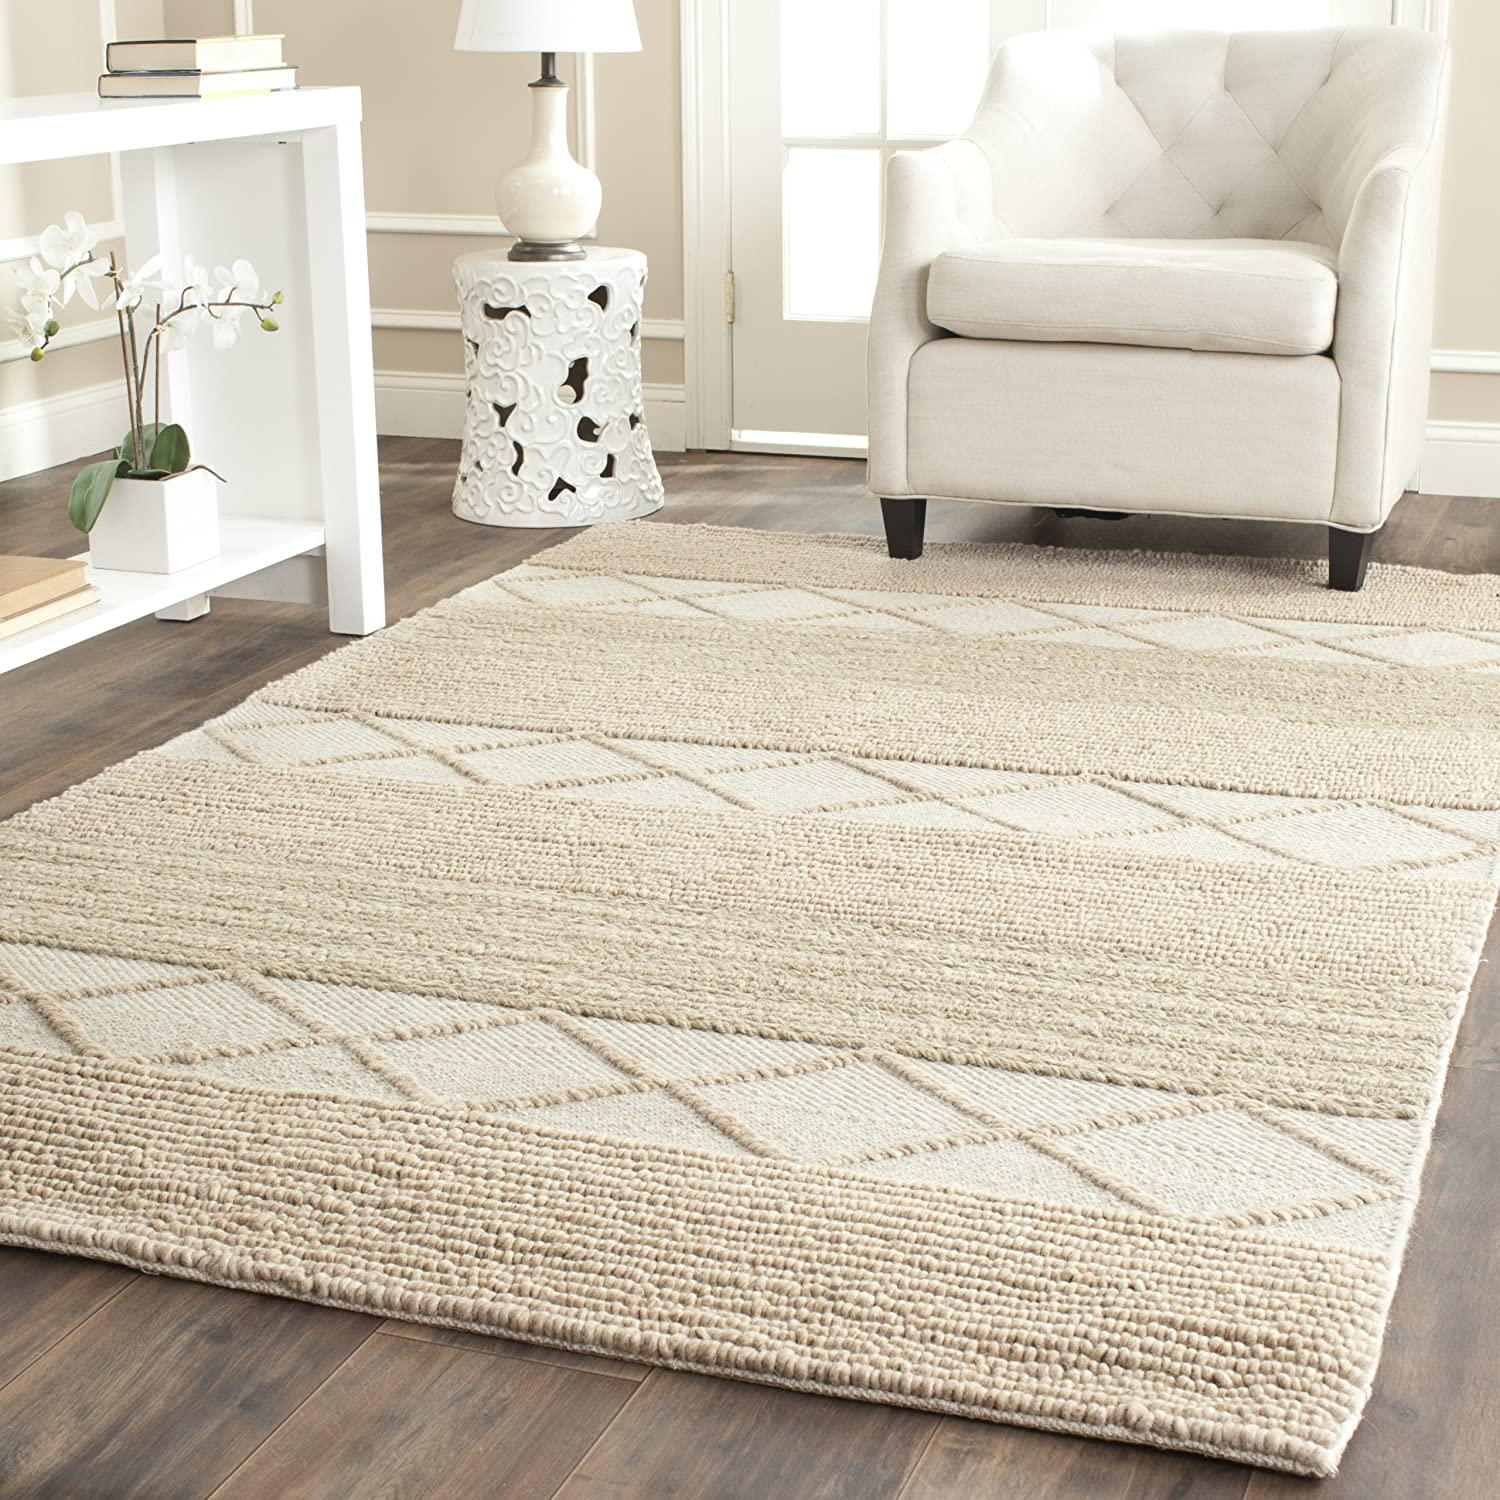 Super special price Safavieh Natura Collection NAT217A Handmade 2021 spring and summer new x Wool Rug Area 6'